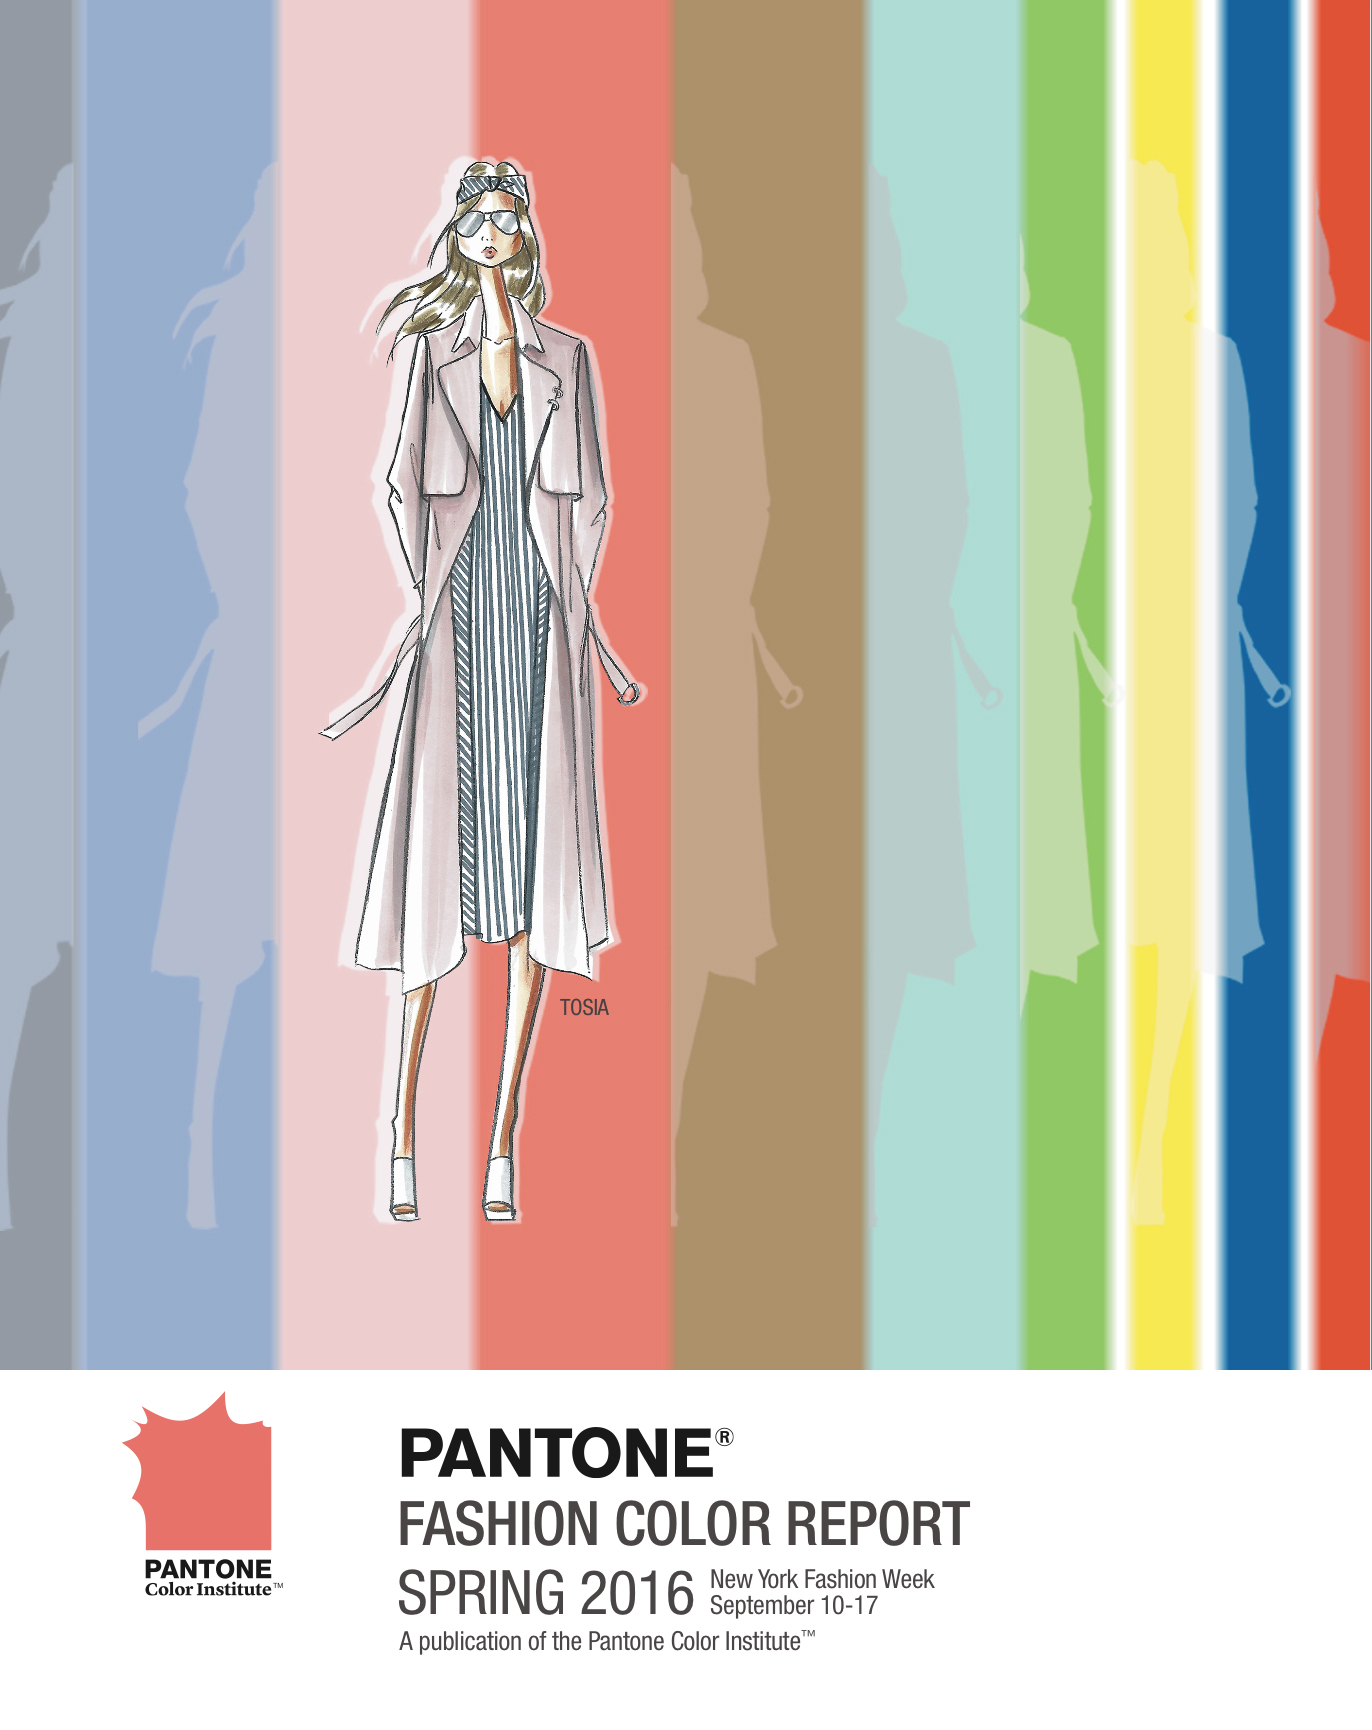 Pantone Fashion Color Report Spring 2016 ‹ Fashion Trendsetter